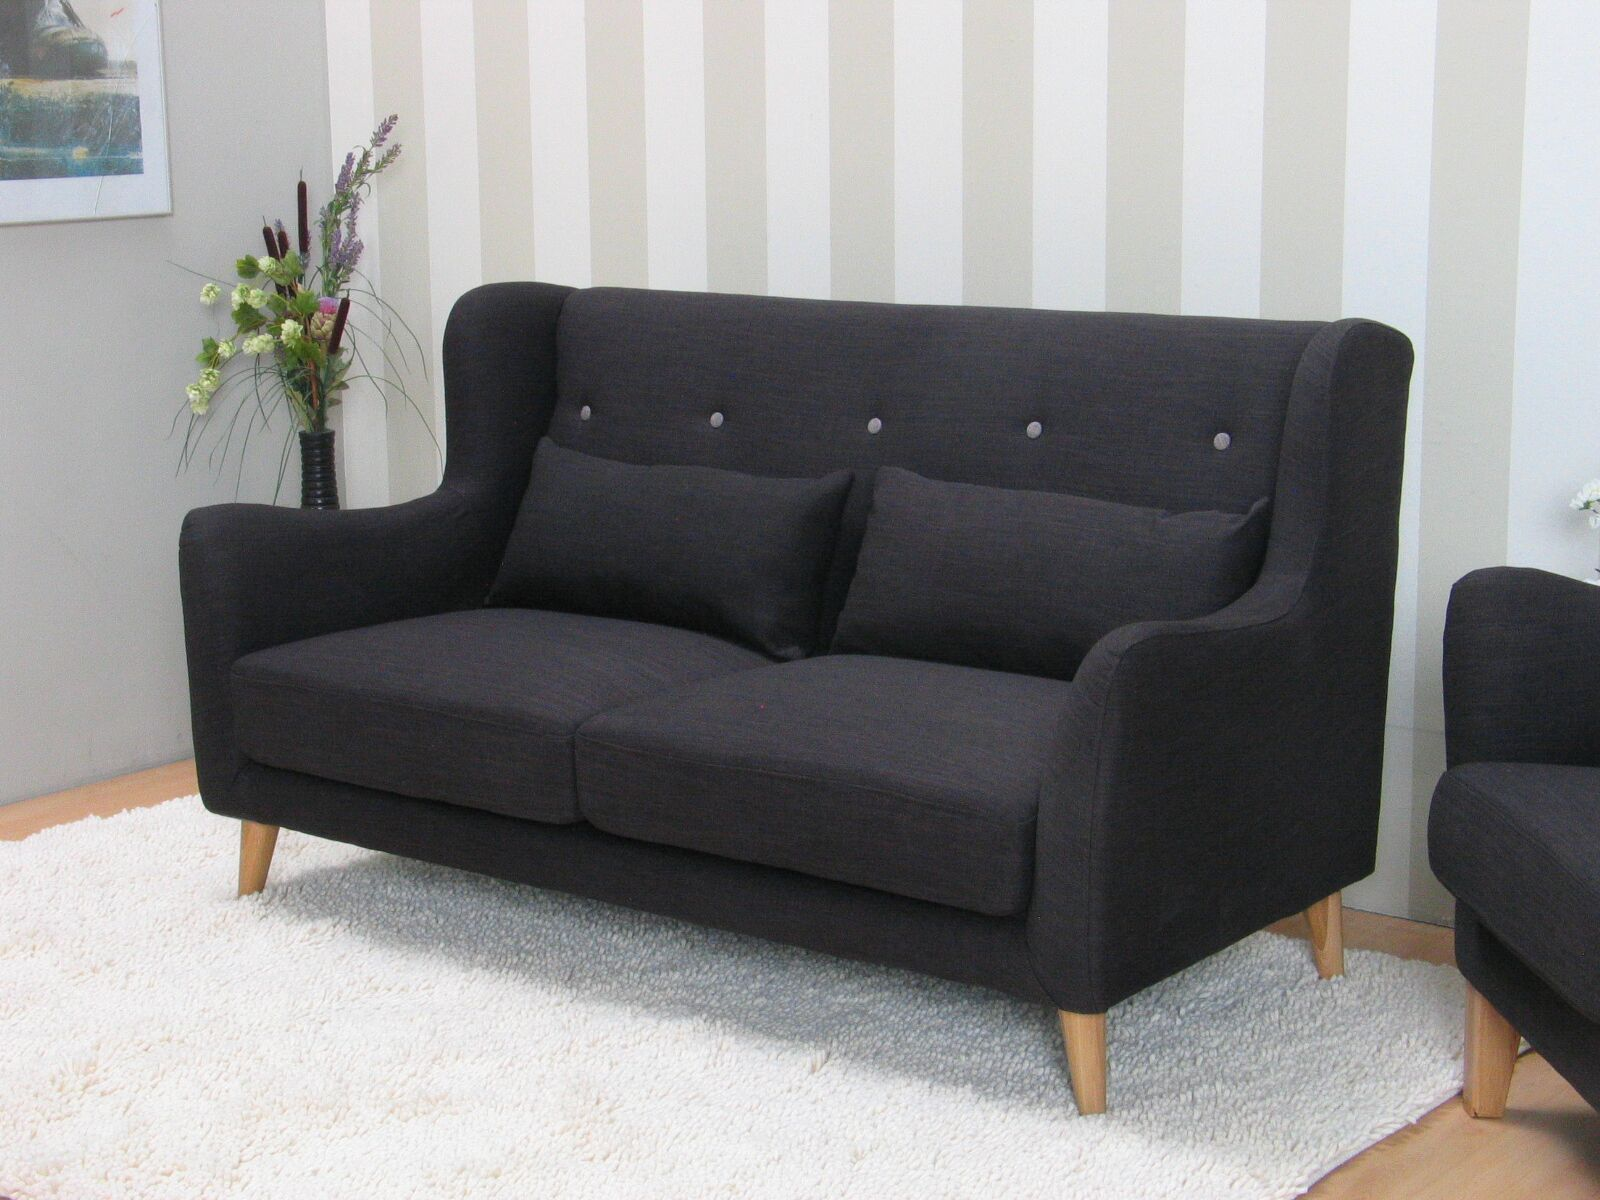 retro sofa grau turkis sofa saderhamn betrak til sovesofa isefall lys turkish sofas furniture. Black Bedroom Furniture Sets. Home Design Ideas